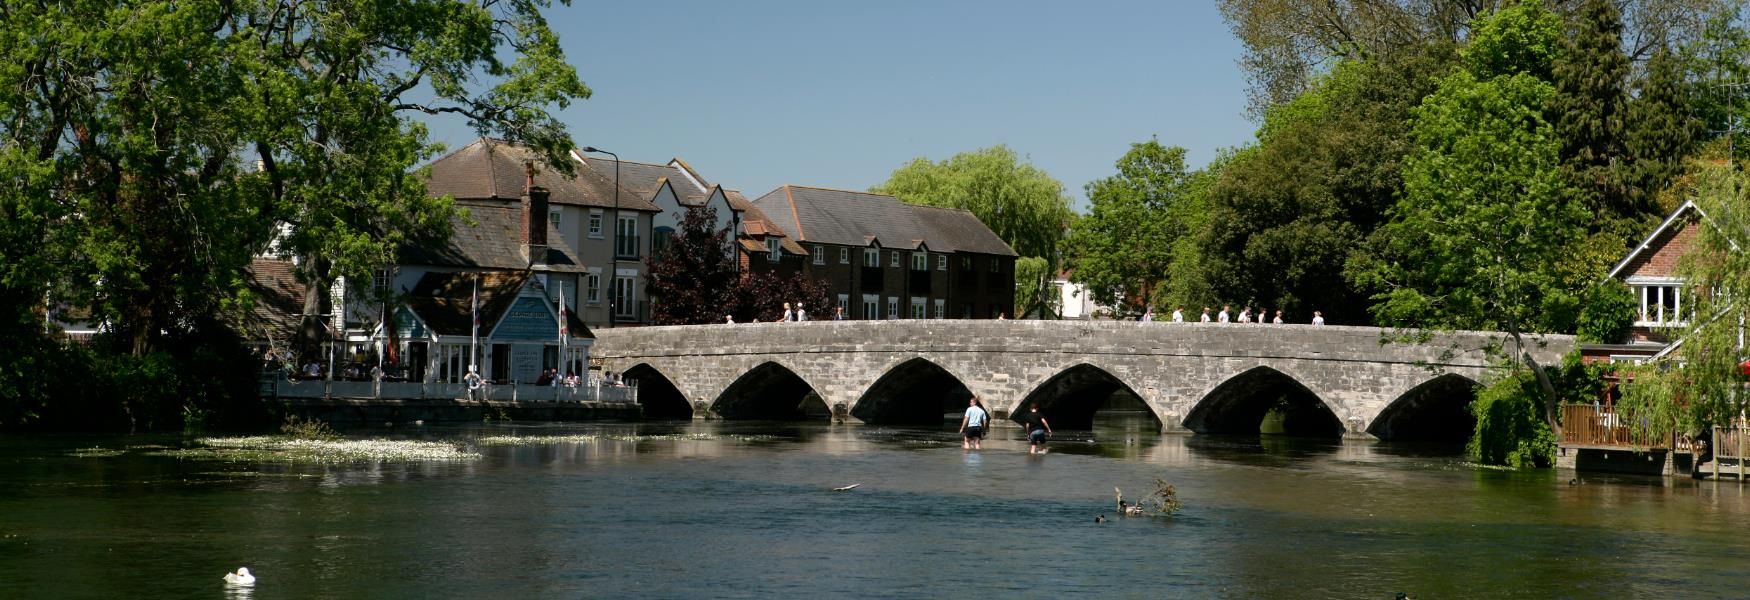 Bridge at Fordingbridge in the New Forest